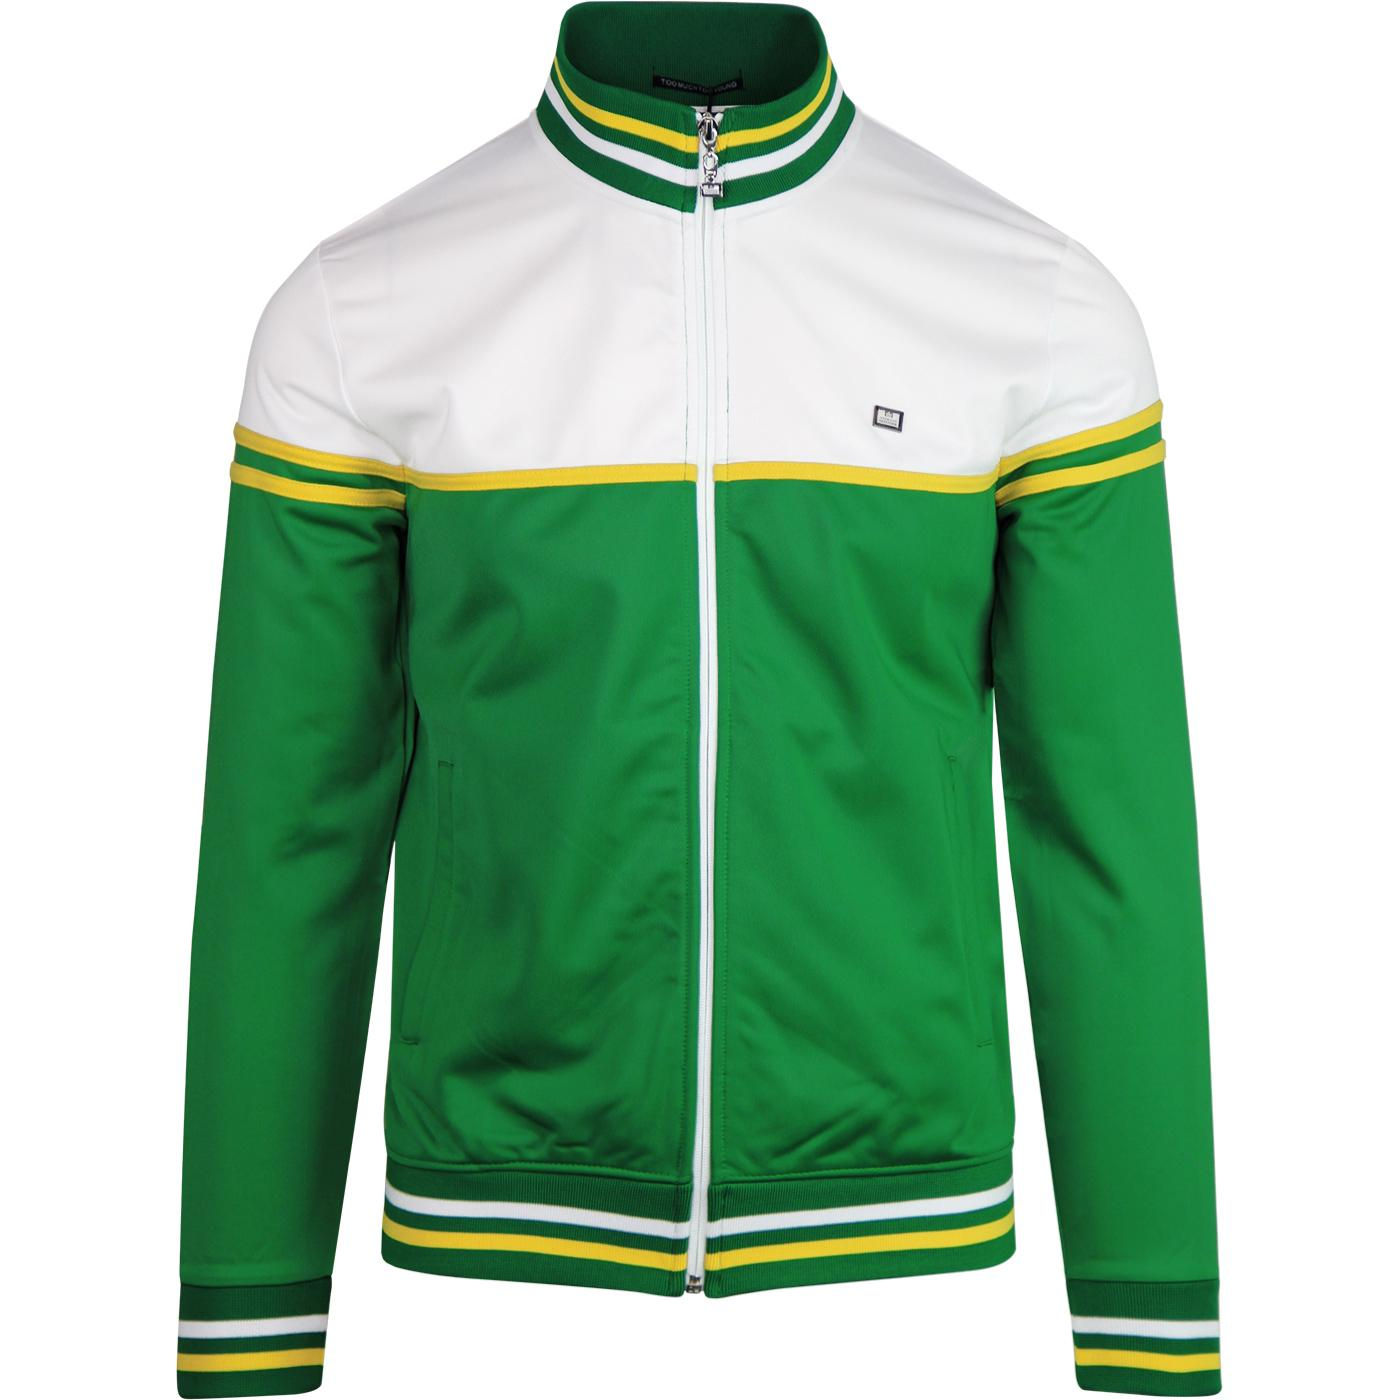 Italia WEEKEND OFFENDER Retro 80s Track Jacket (G)